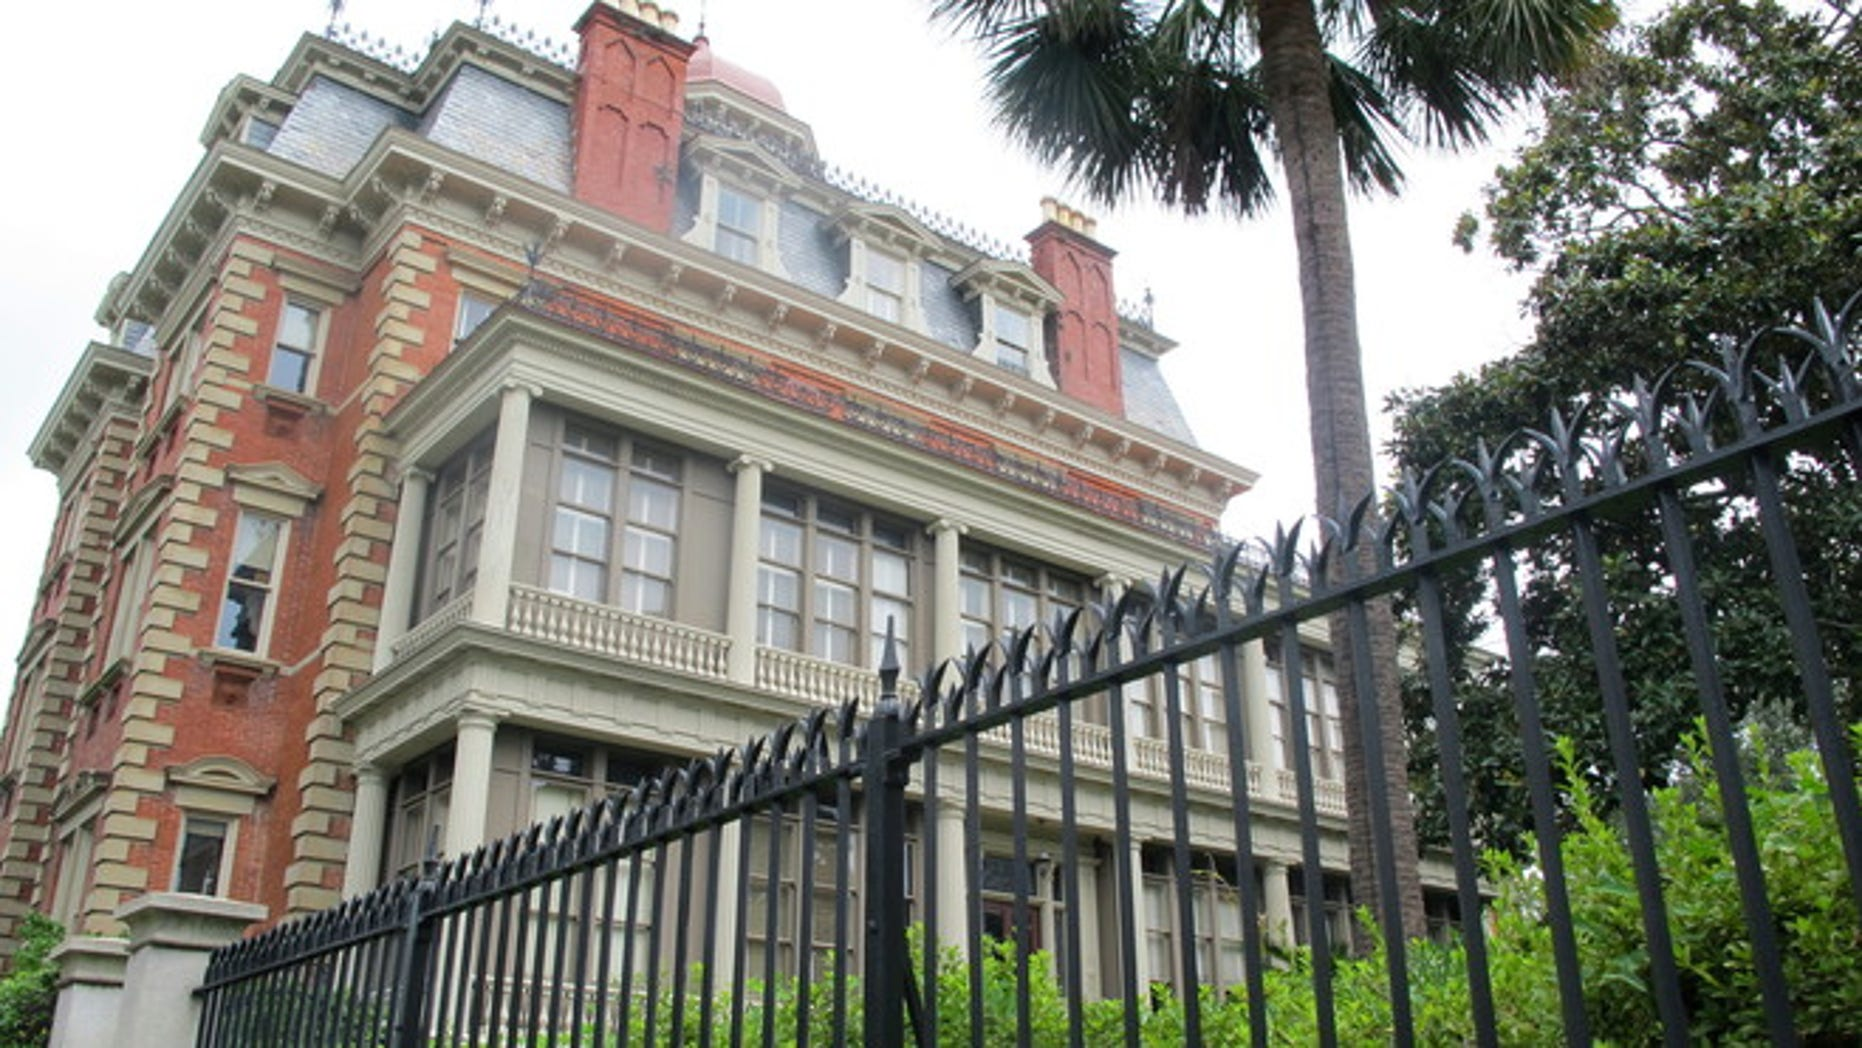 Aug. 23, 2012: The Wentworth Mansion in Charleston, S.C.